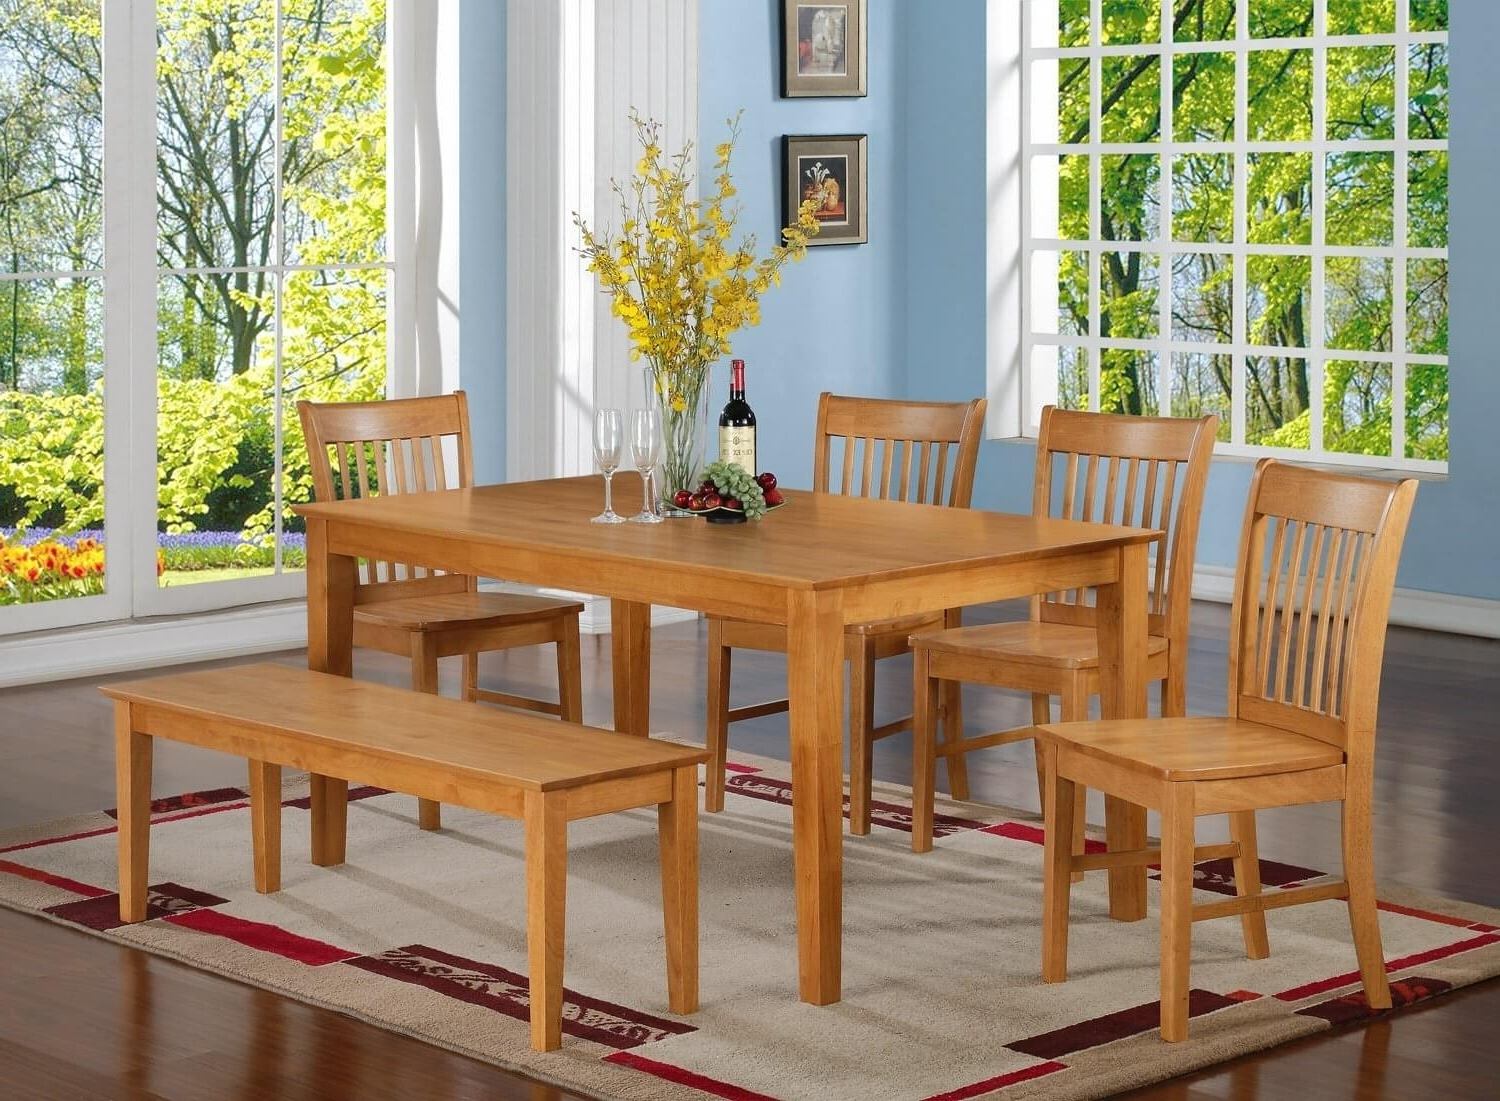 Preferred Dining Tables Seats 8 Throughout 26 Dining Room Sets (Big And Small) With Bench Seating (2018) (View 16 of 25)